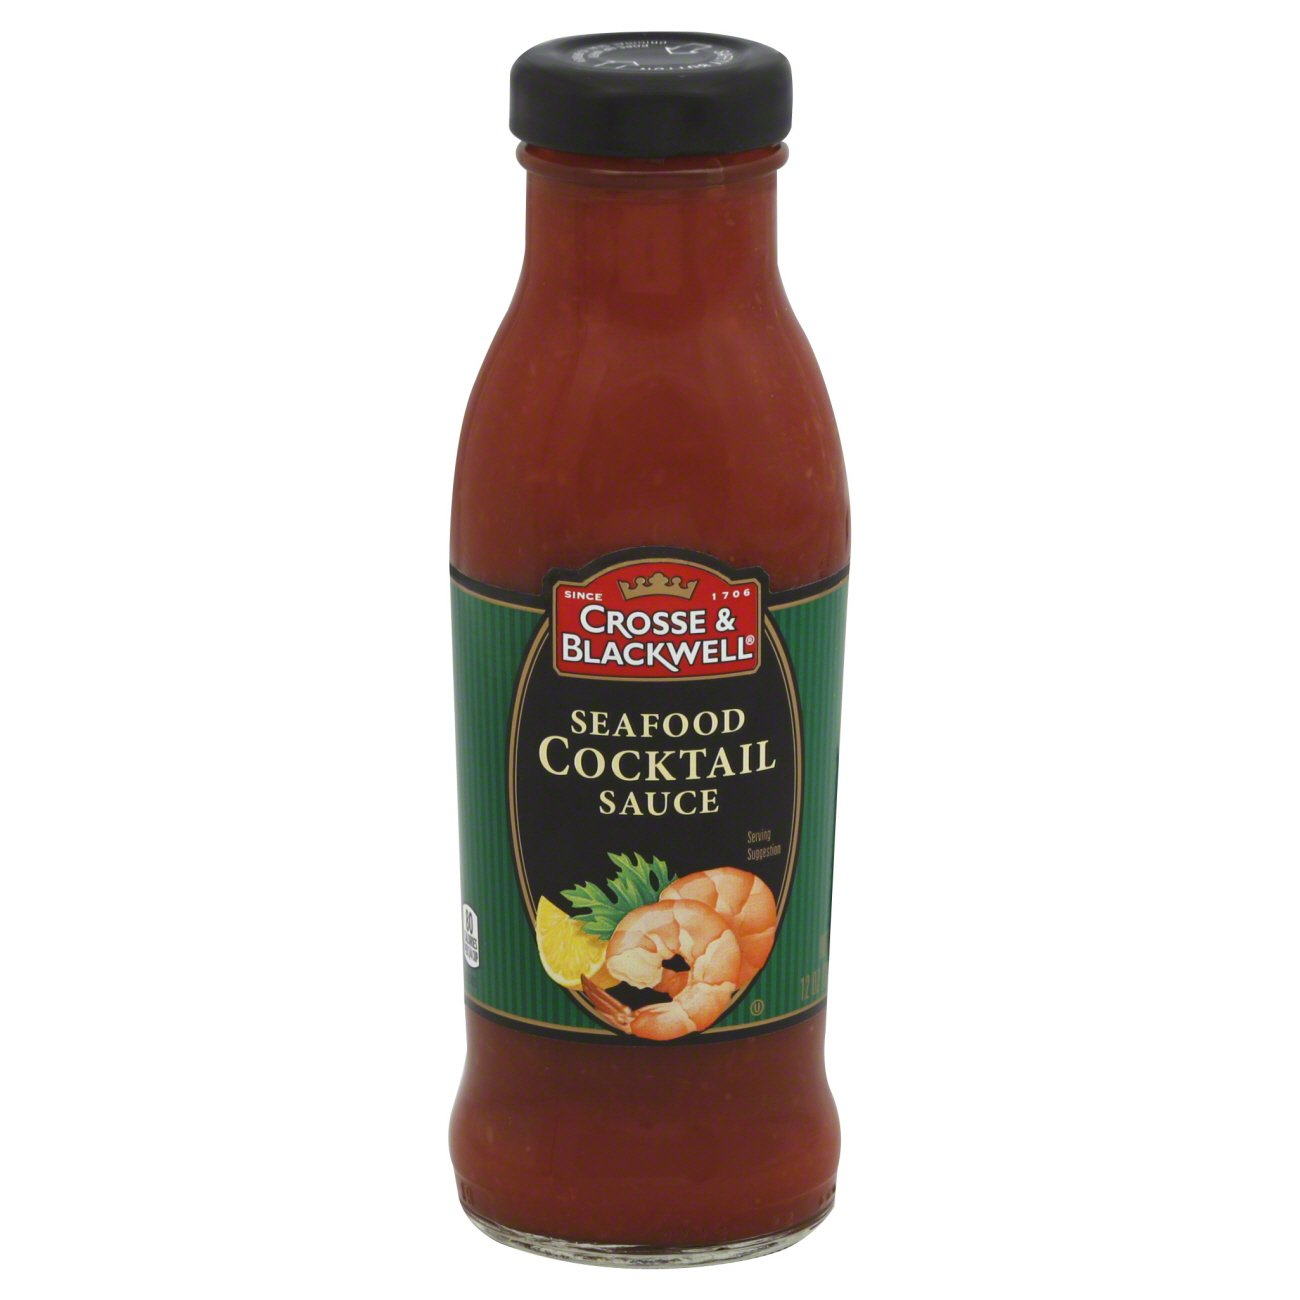 Crosse & Blackwell Seafood Cocktail Sauce - Shop Marinades and ...